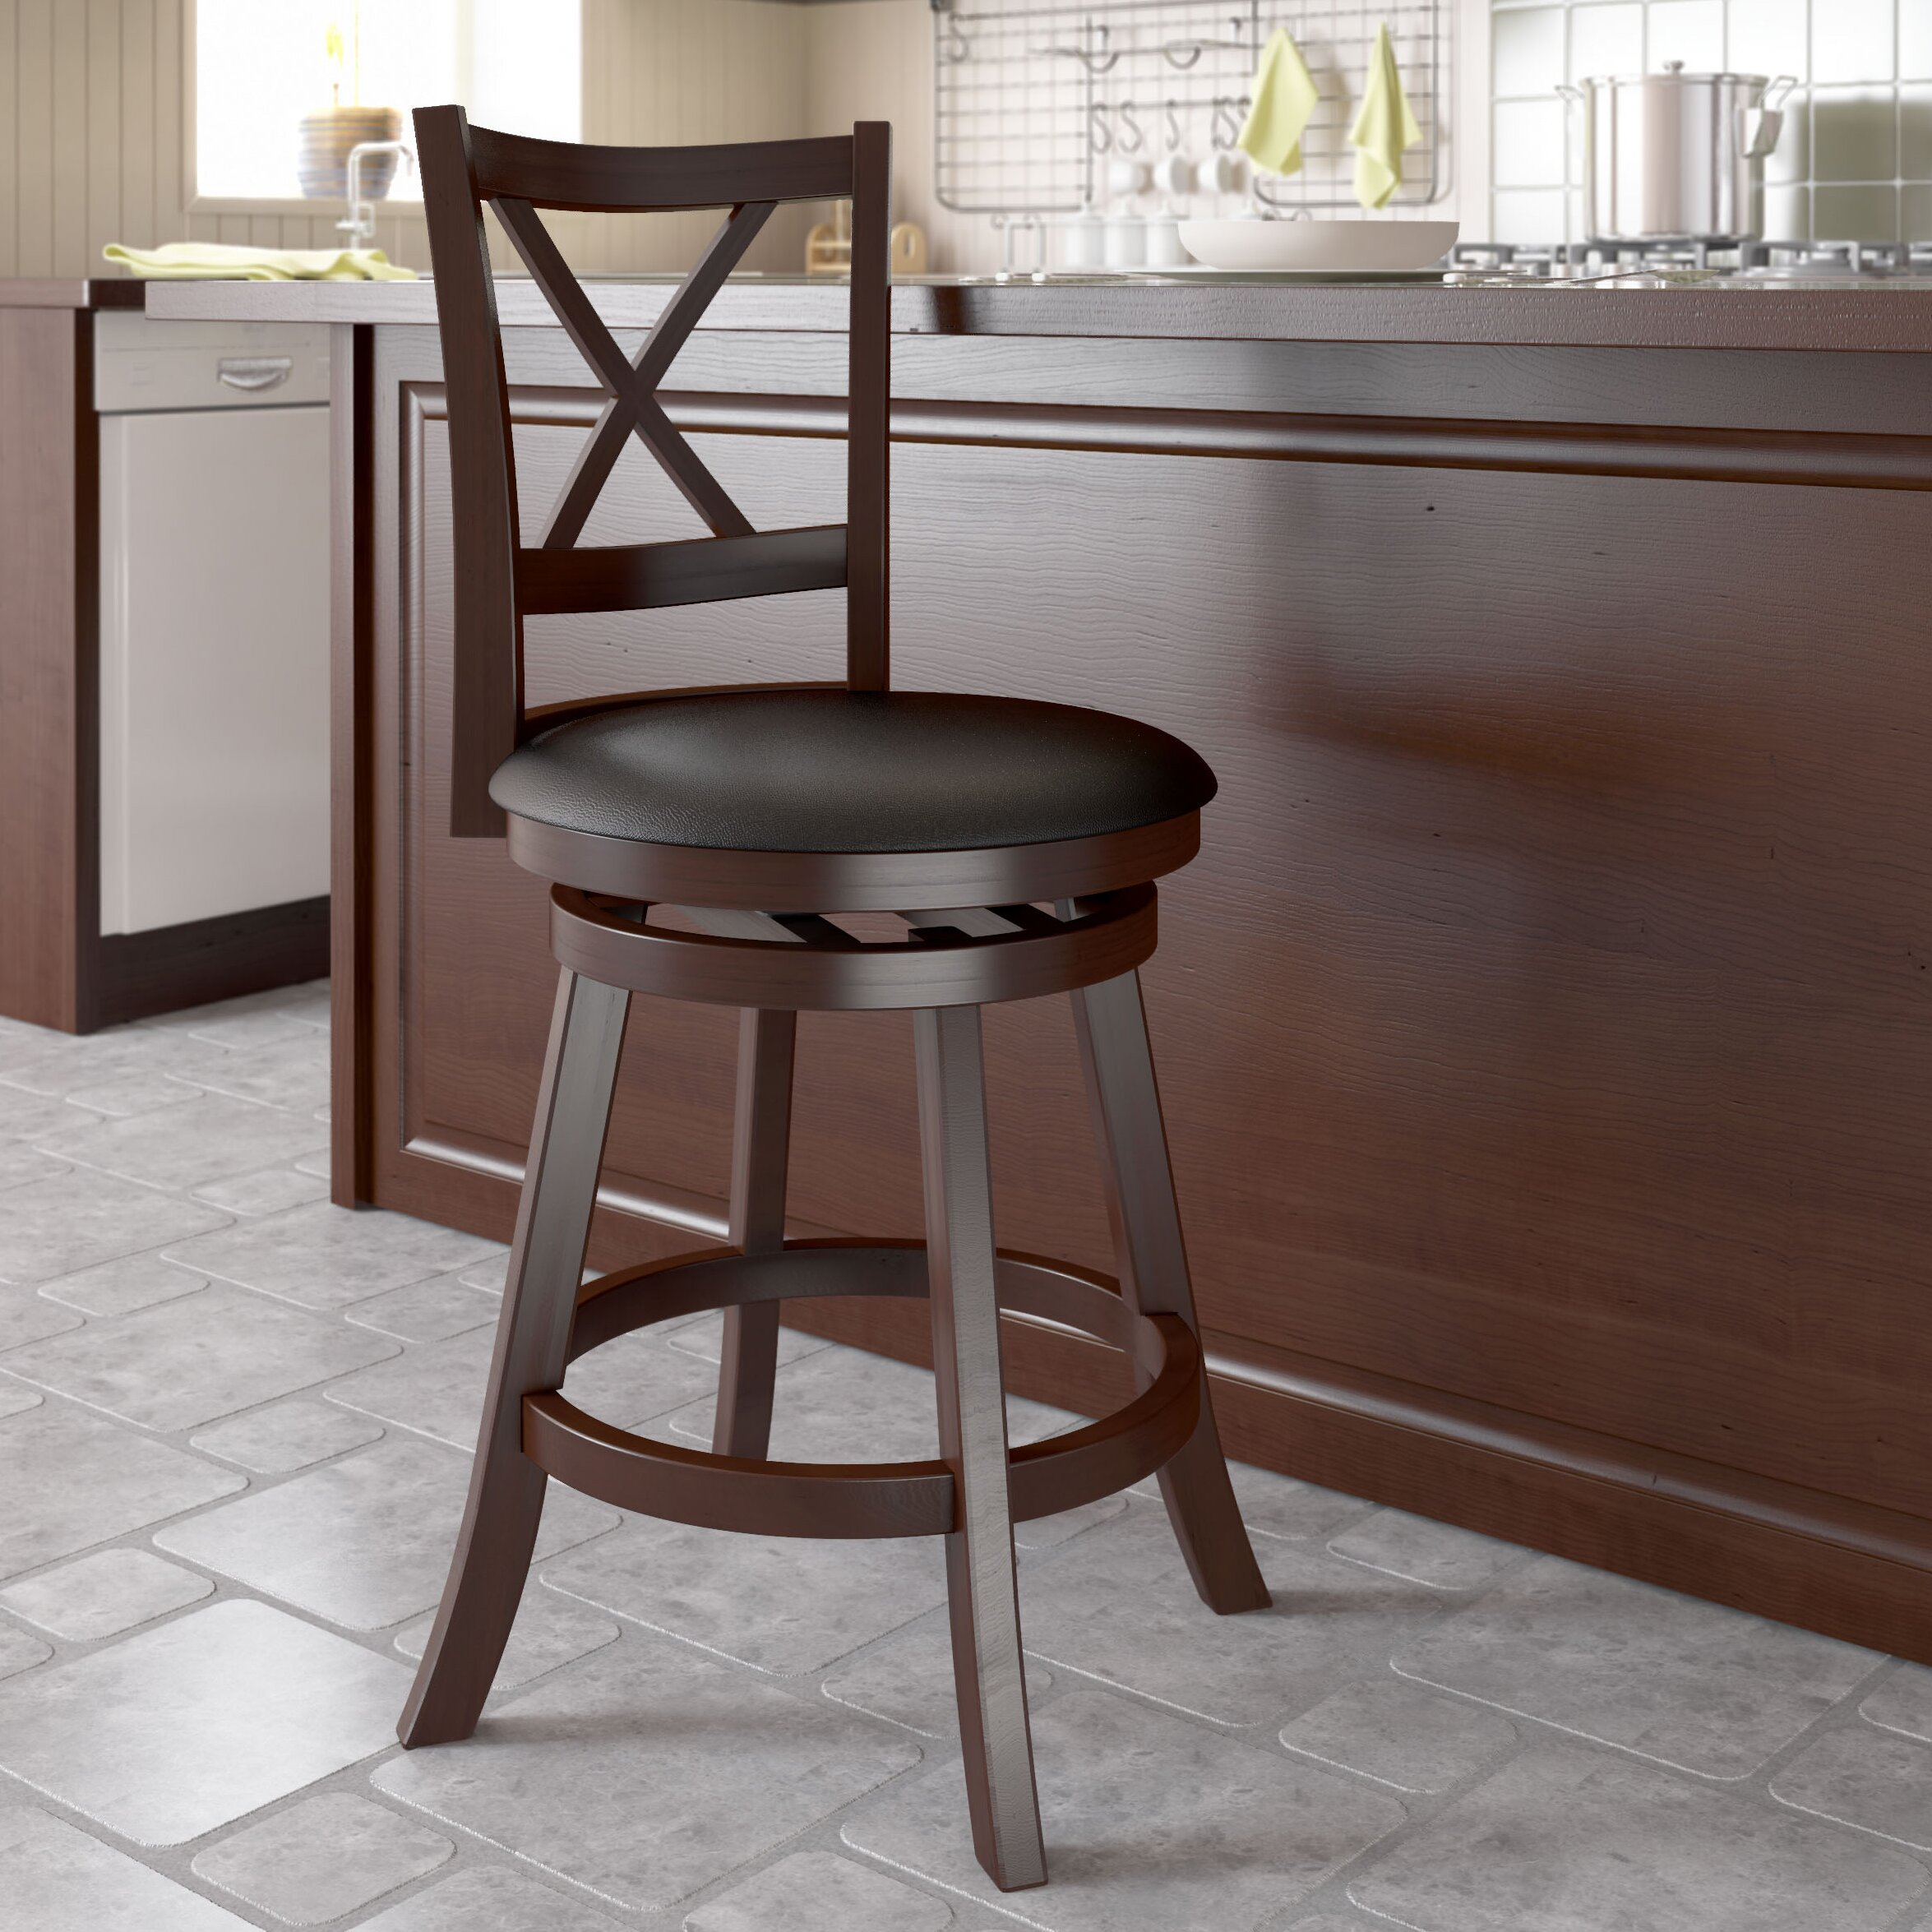 Amazing photo of  design Woodgrove 24 Swivel Bar Stool with Cushion & Reviews W  with #412C26 color and 2350x2350 pixels